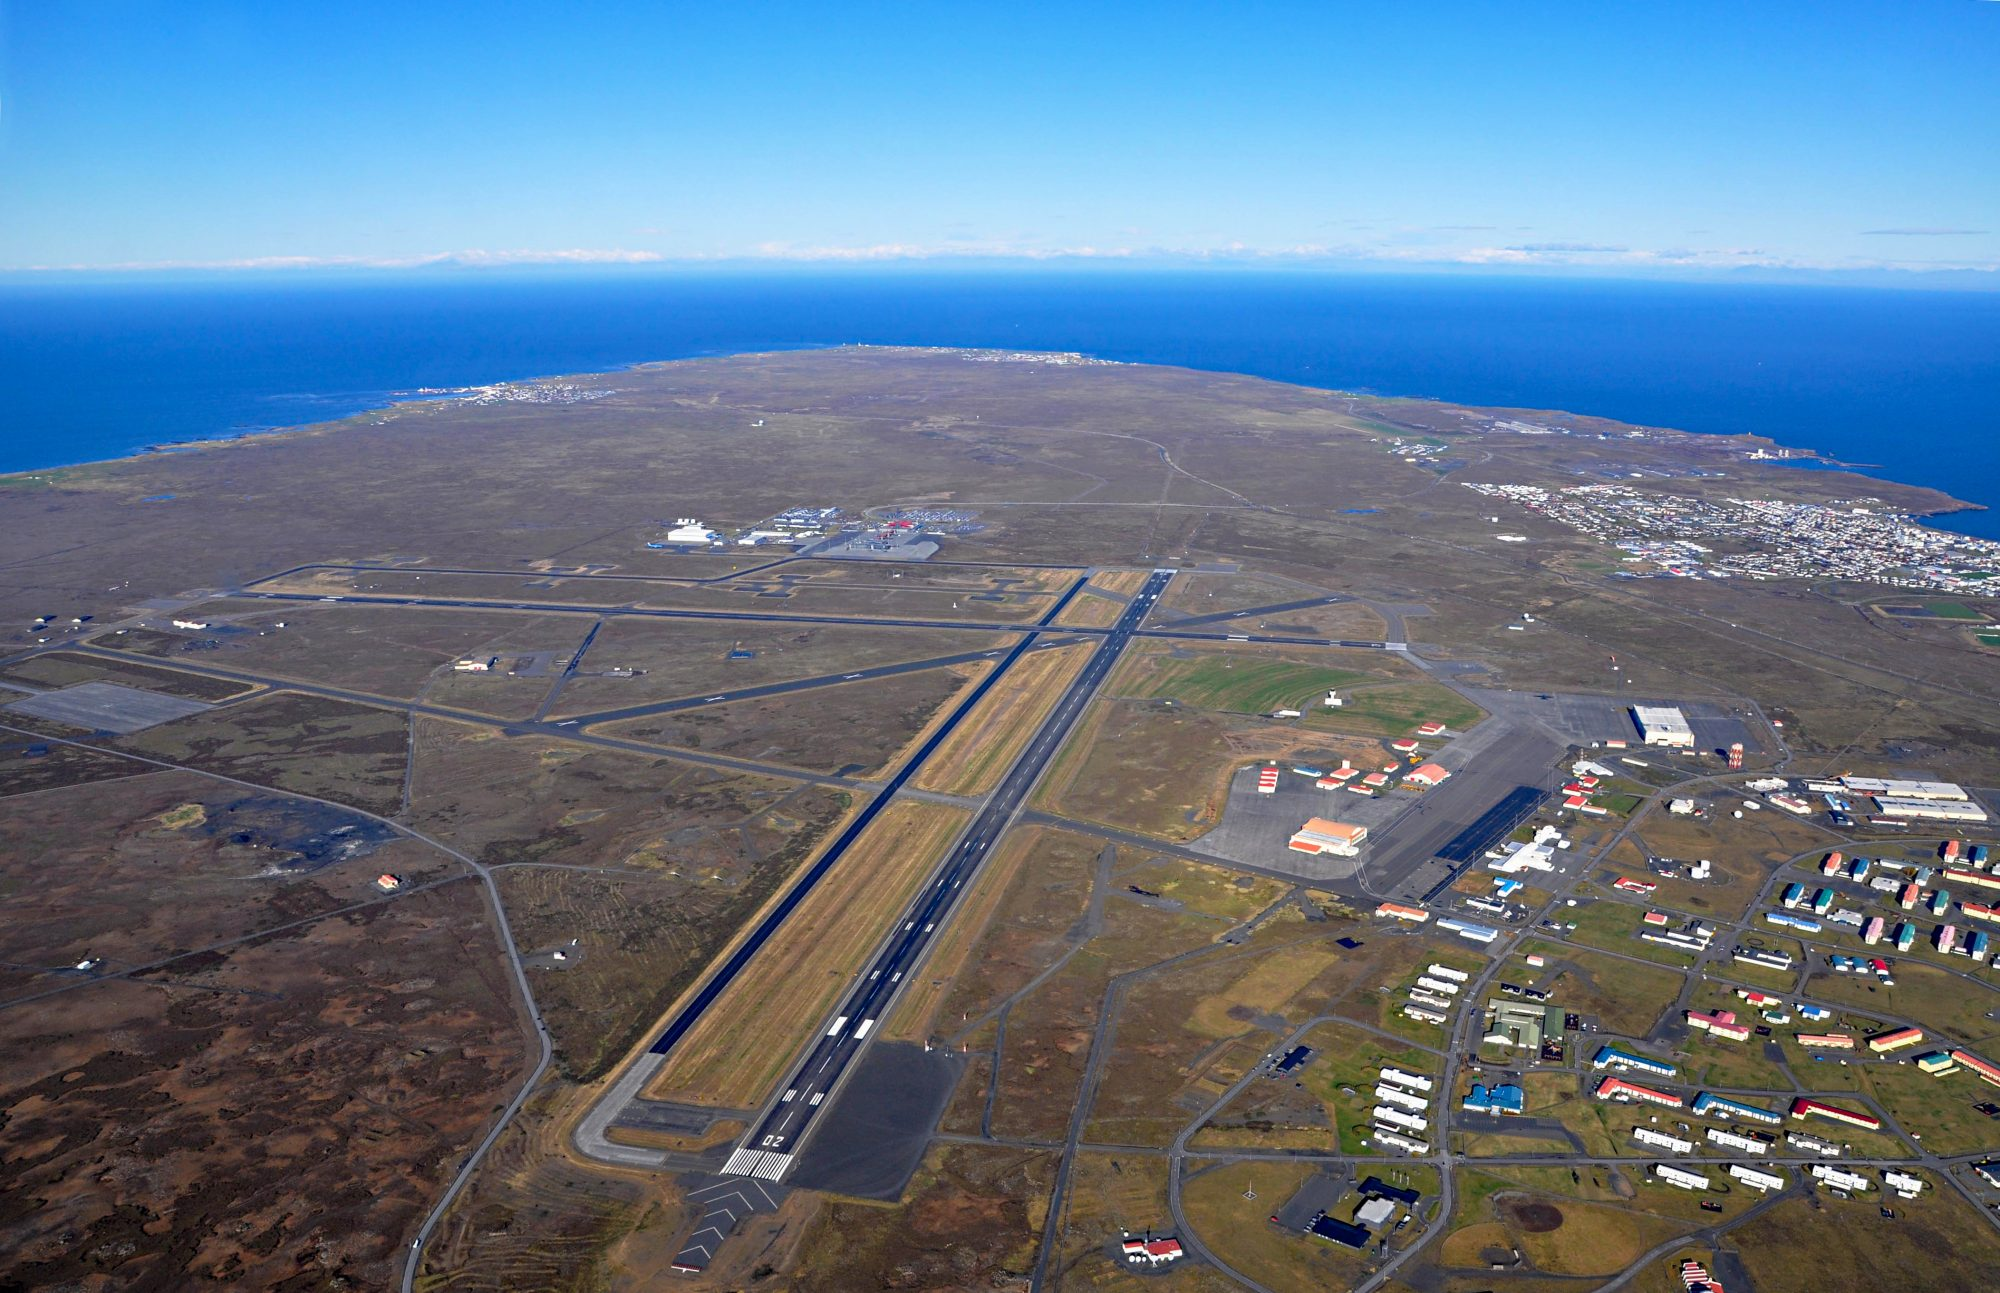 keflavik international airport from the sky